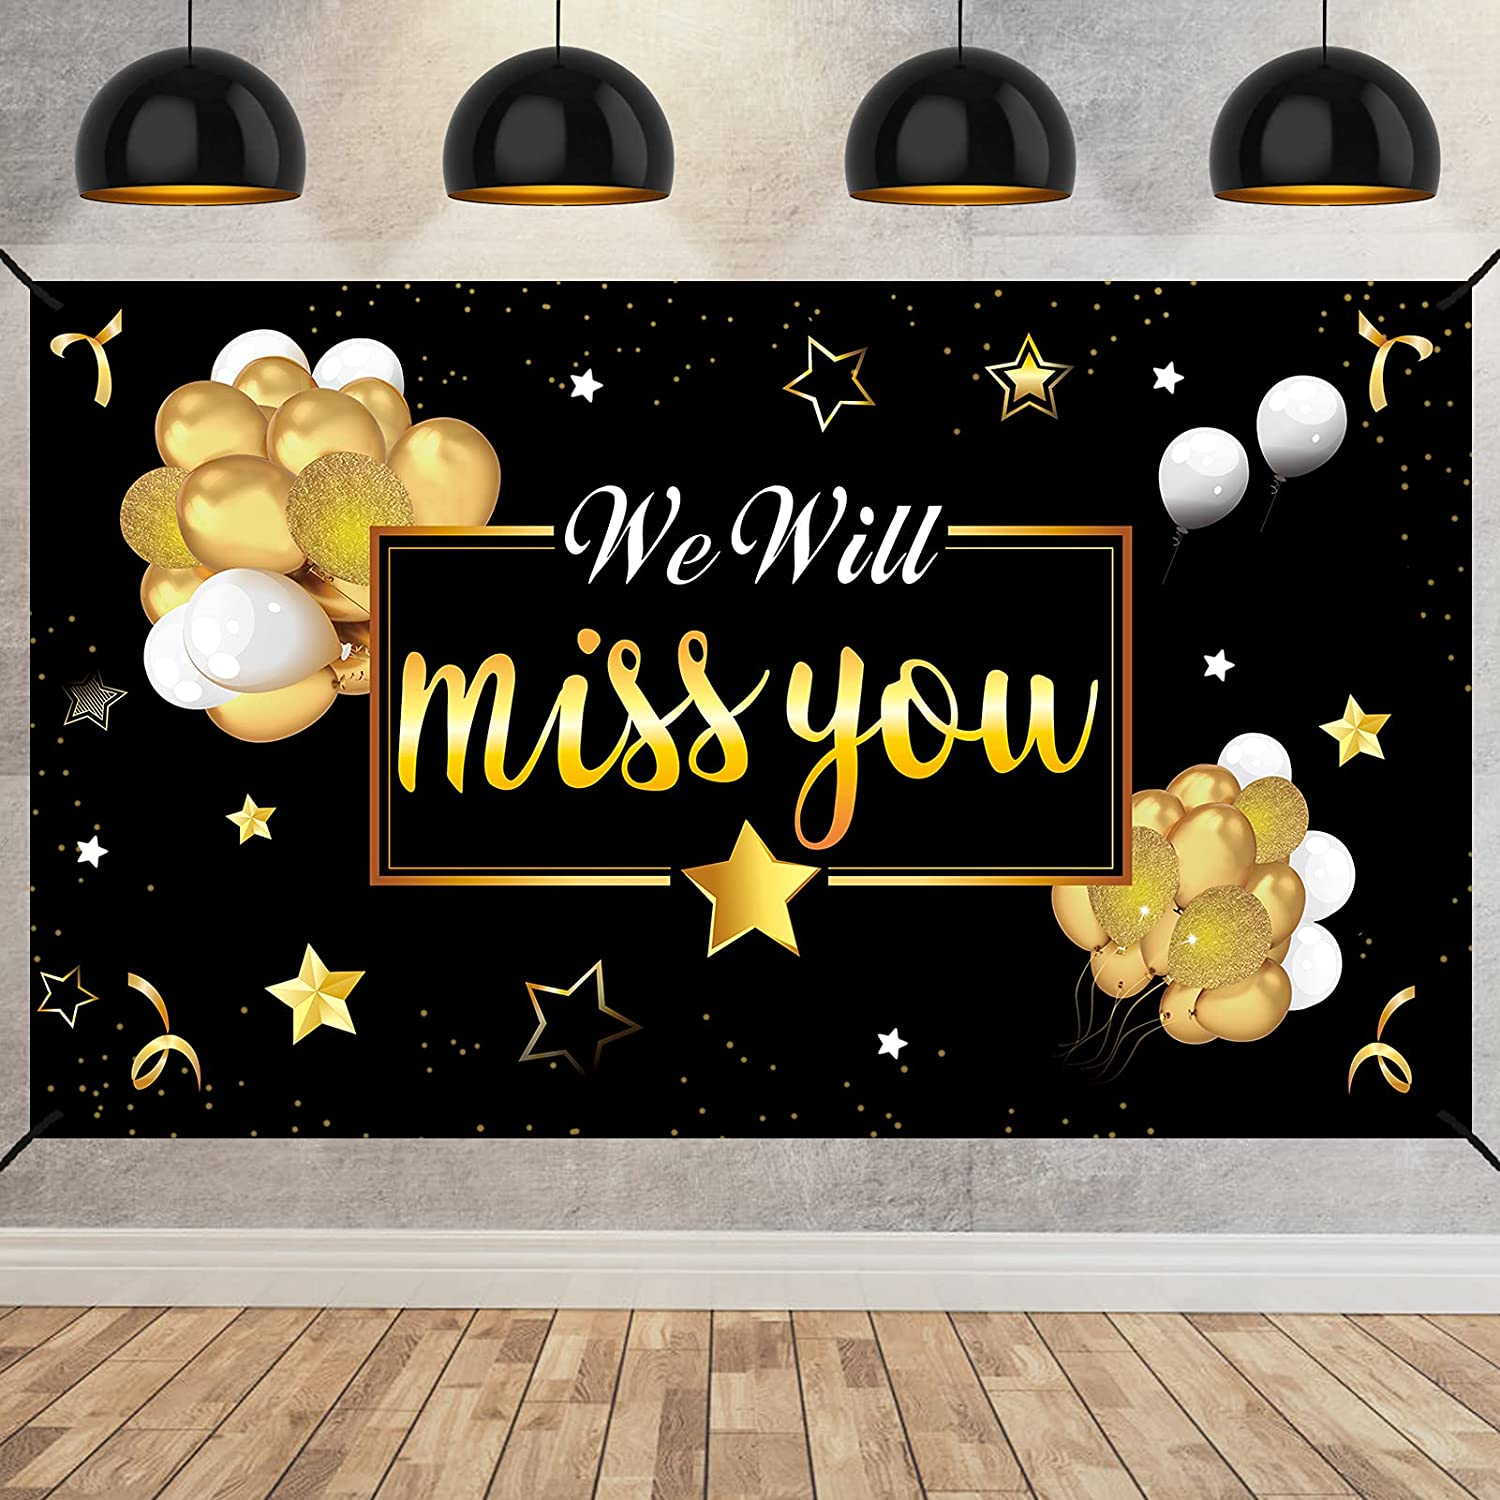 We Will Miss You Going Away Party Banner Backdrop Decorations, Extra Large Black Gold Retirement Party Supplies, Farewell Goodbye Party Background Sign Decor for Coworker Men Women